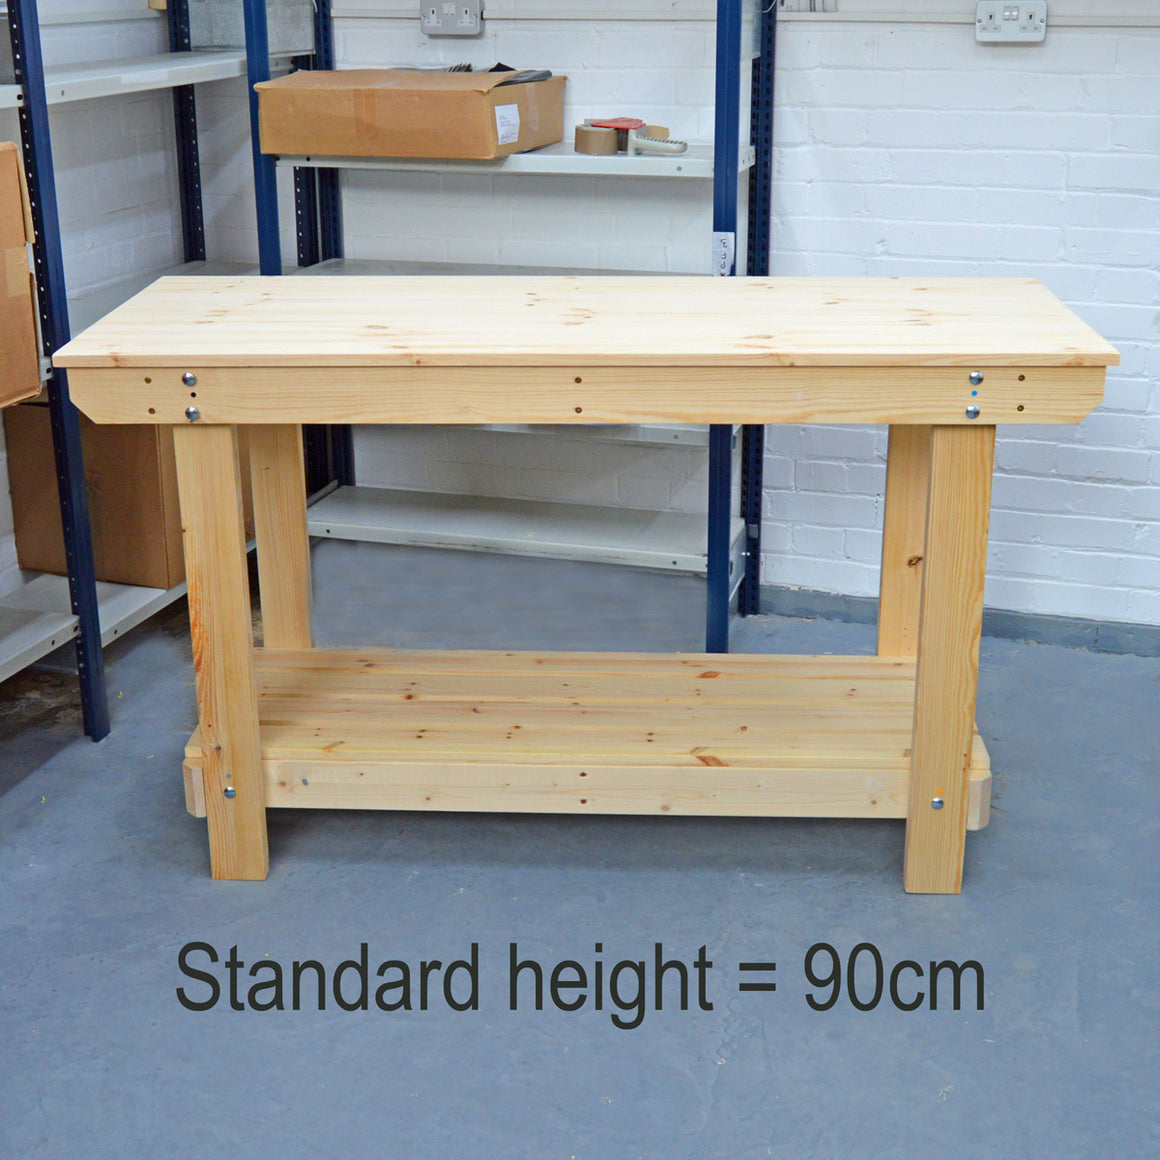 Change the Height of Your Workbench / Potting Table